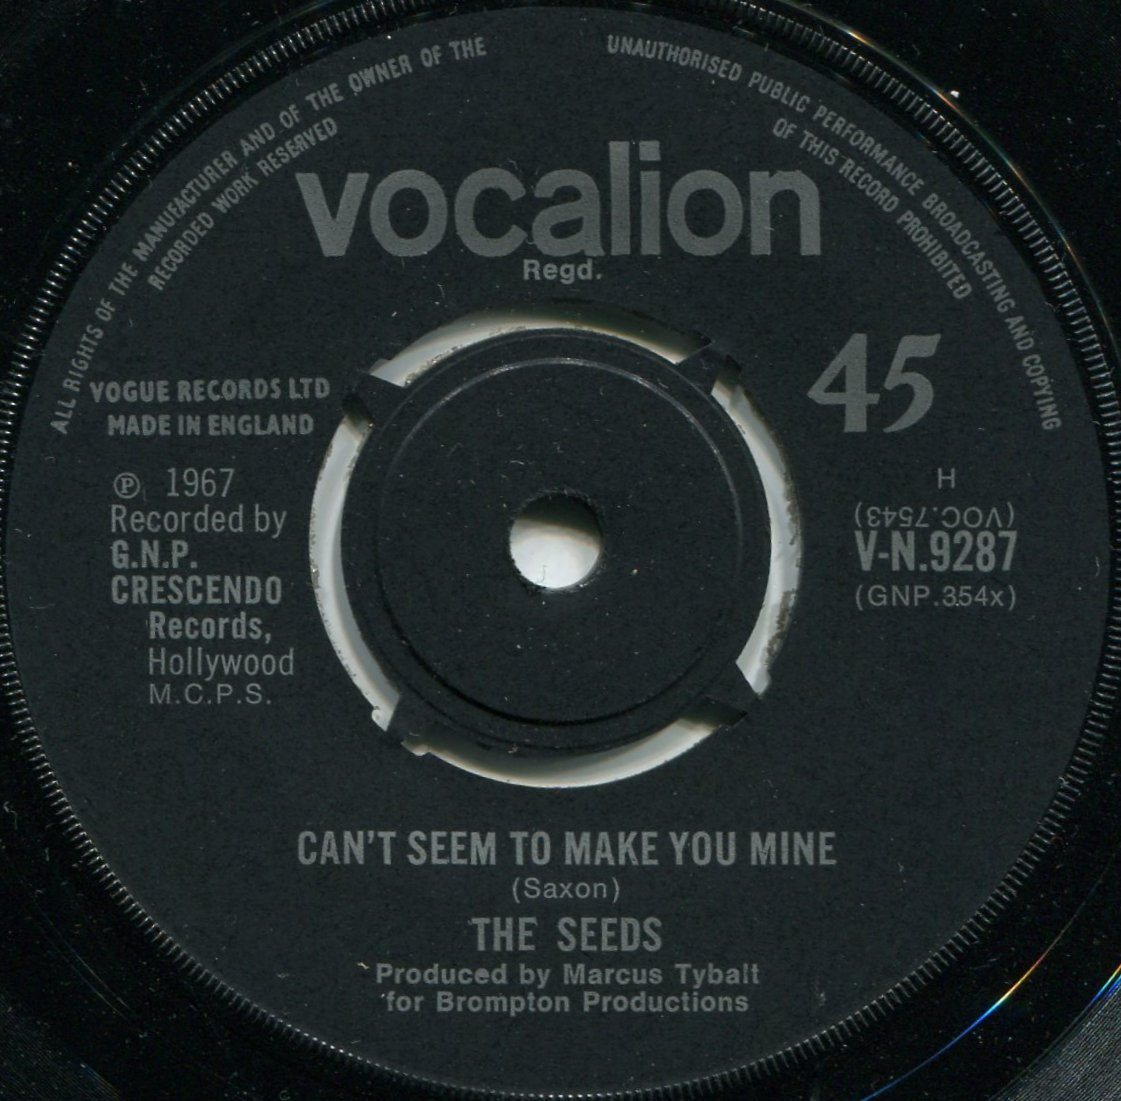 Seeds (The) - Can't Seem To Make You Mine / Daisy Mae - UK Vocalion V-N 9287